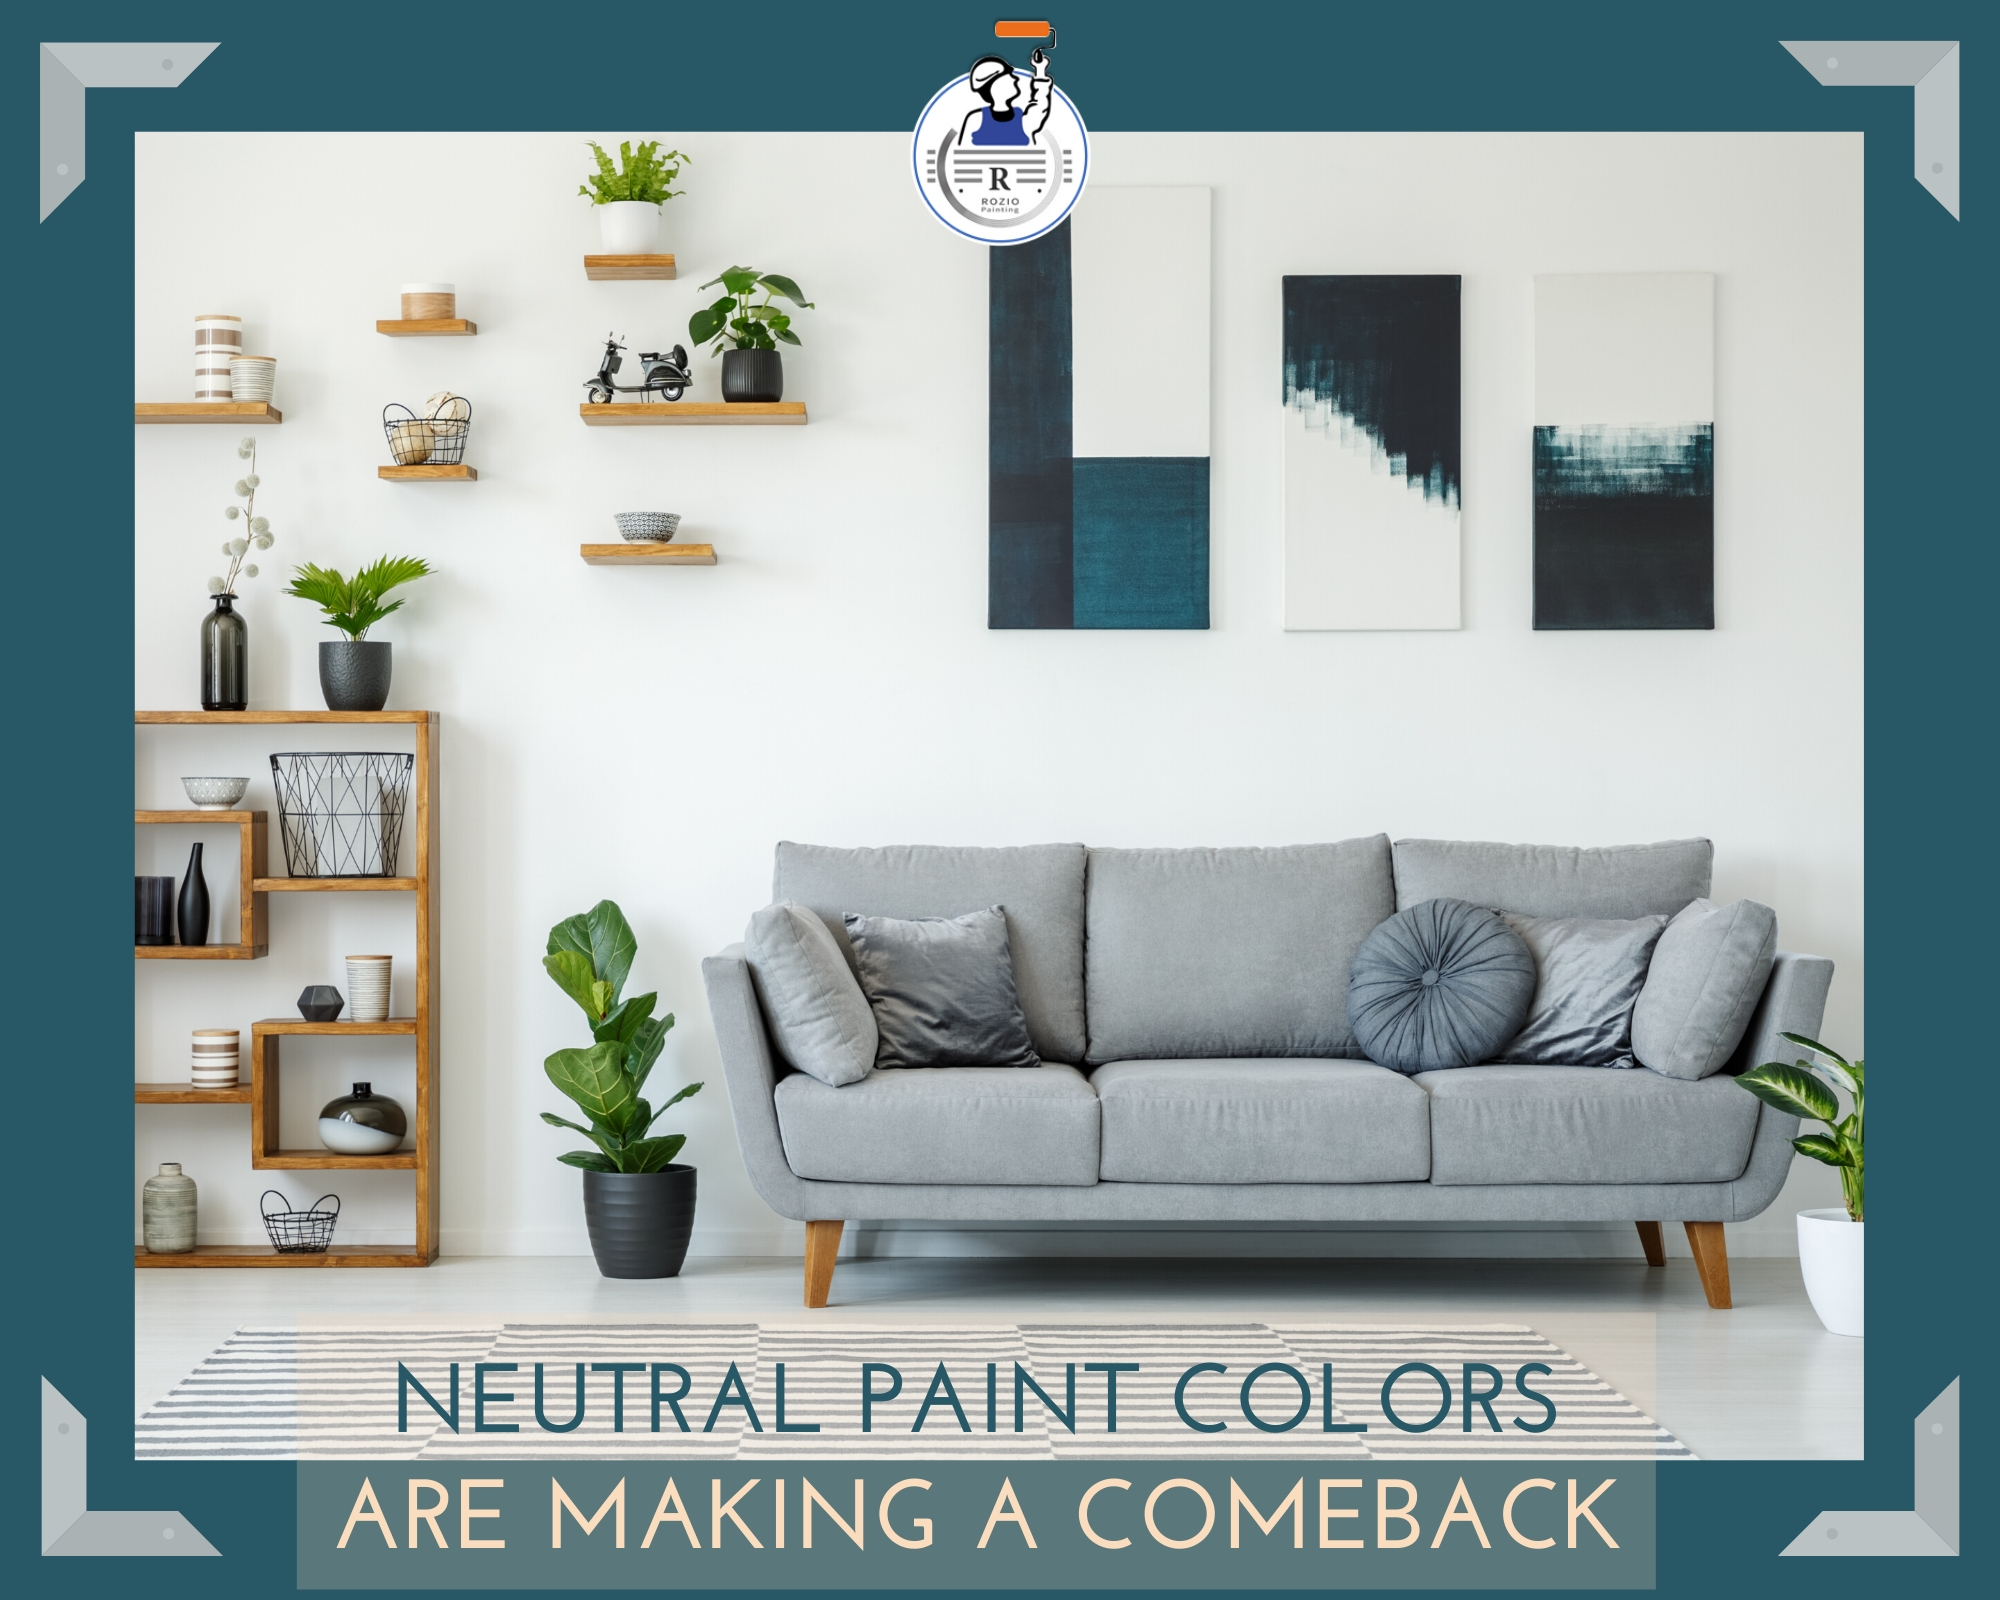 Neutral Paint Colors Are Making a Comeback